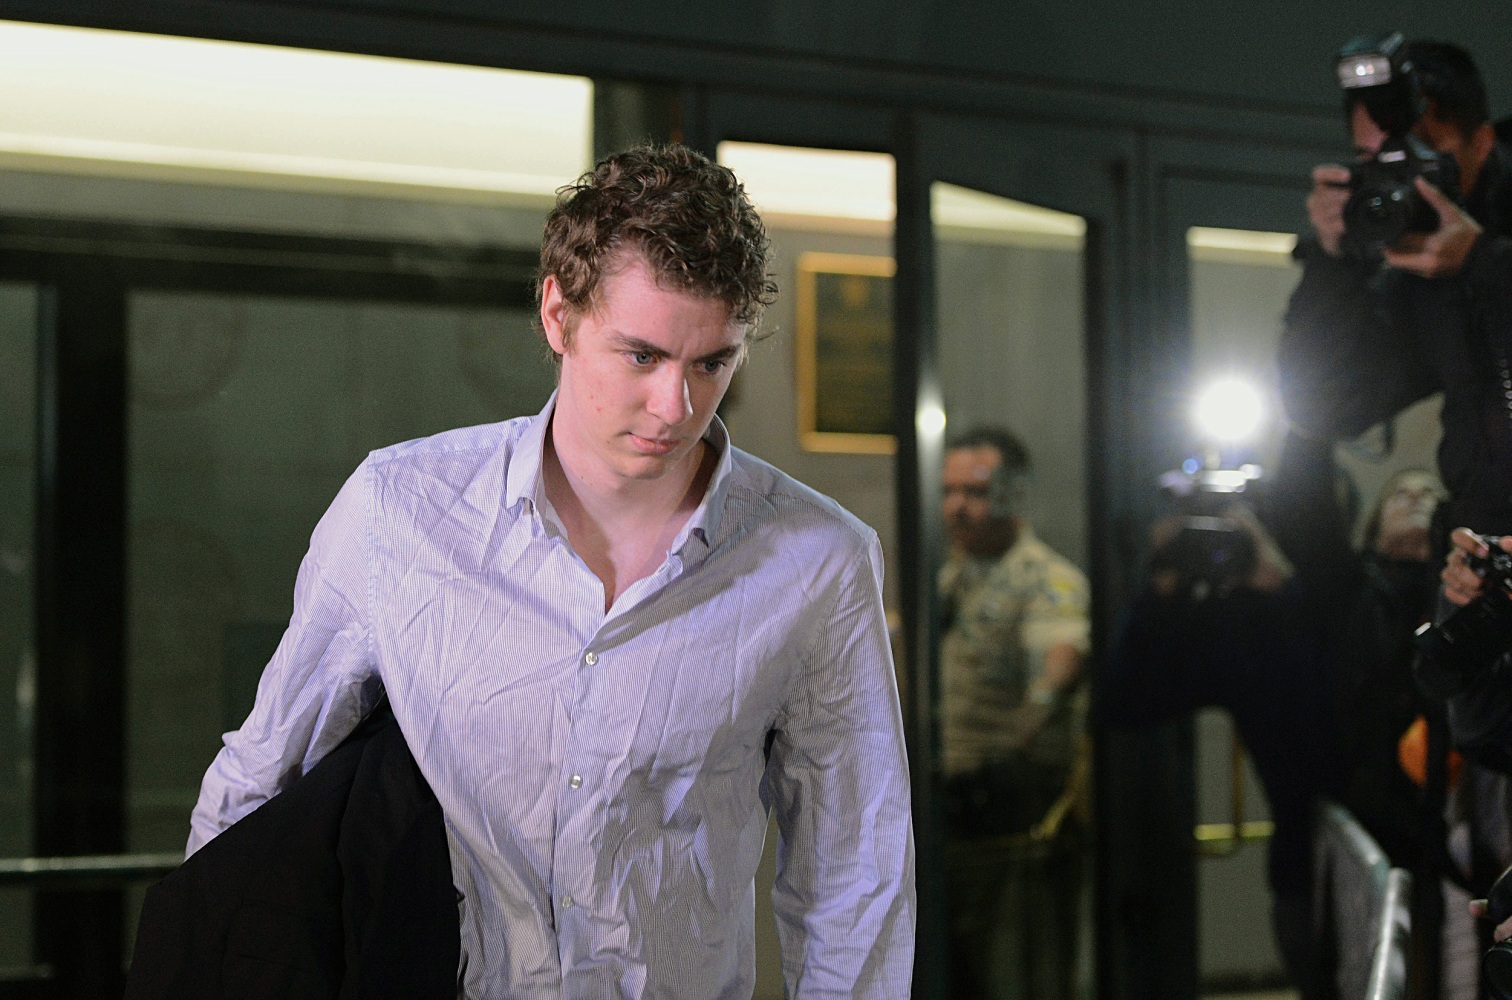 Former Stanford Swimmer Brock Turner Files to Appeal Sexual Assault Convictions